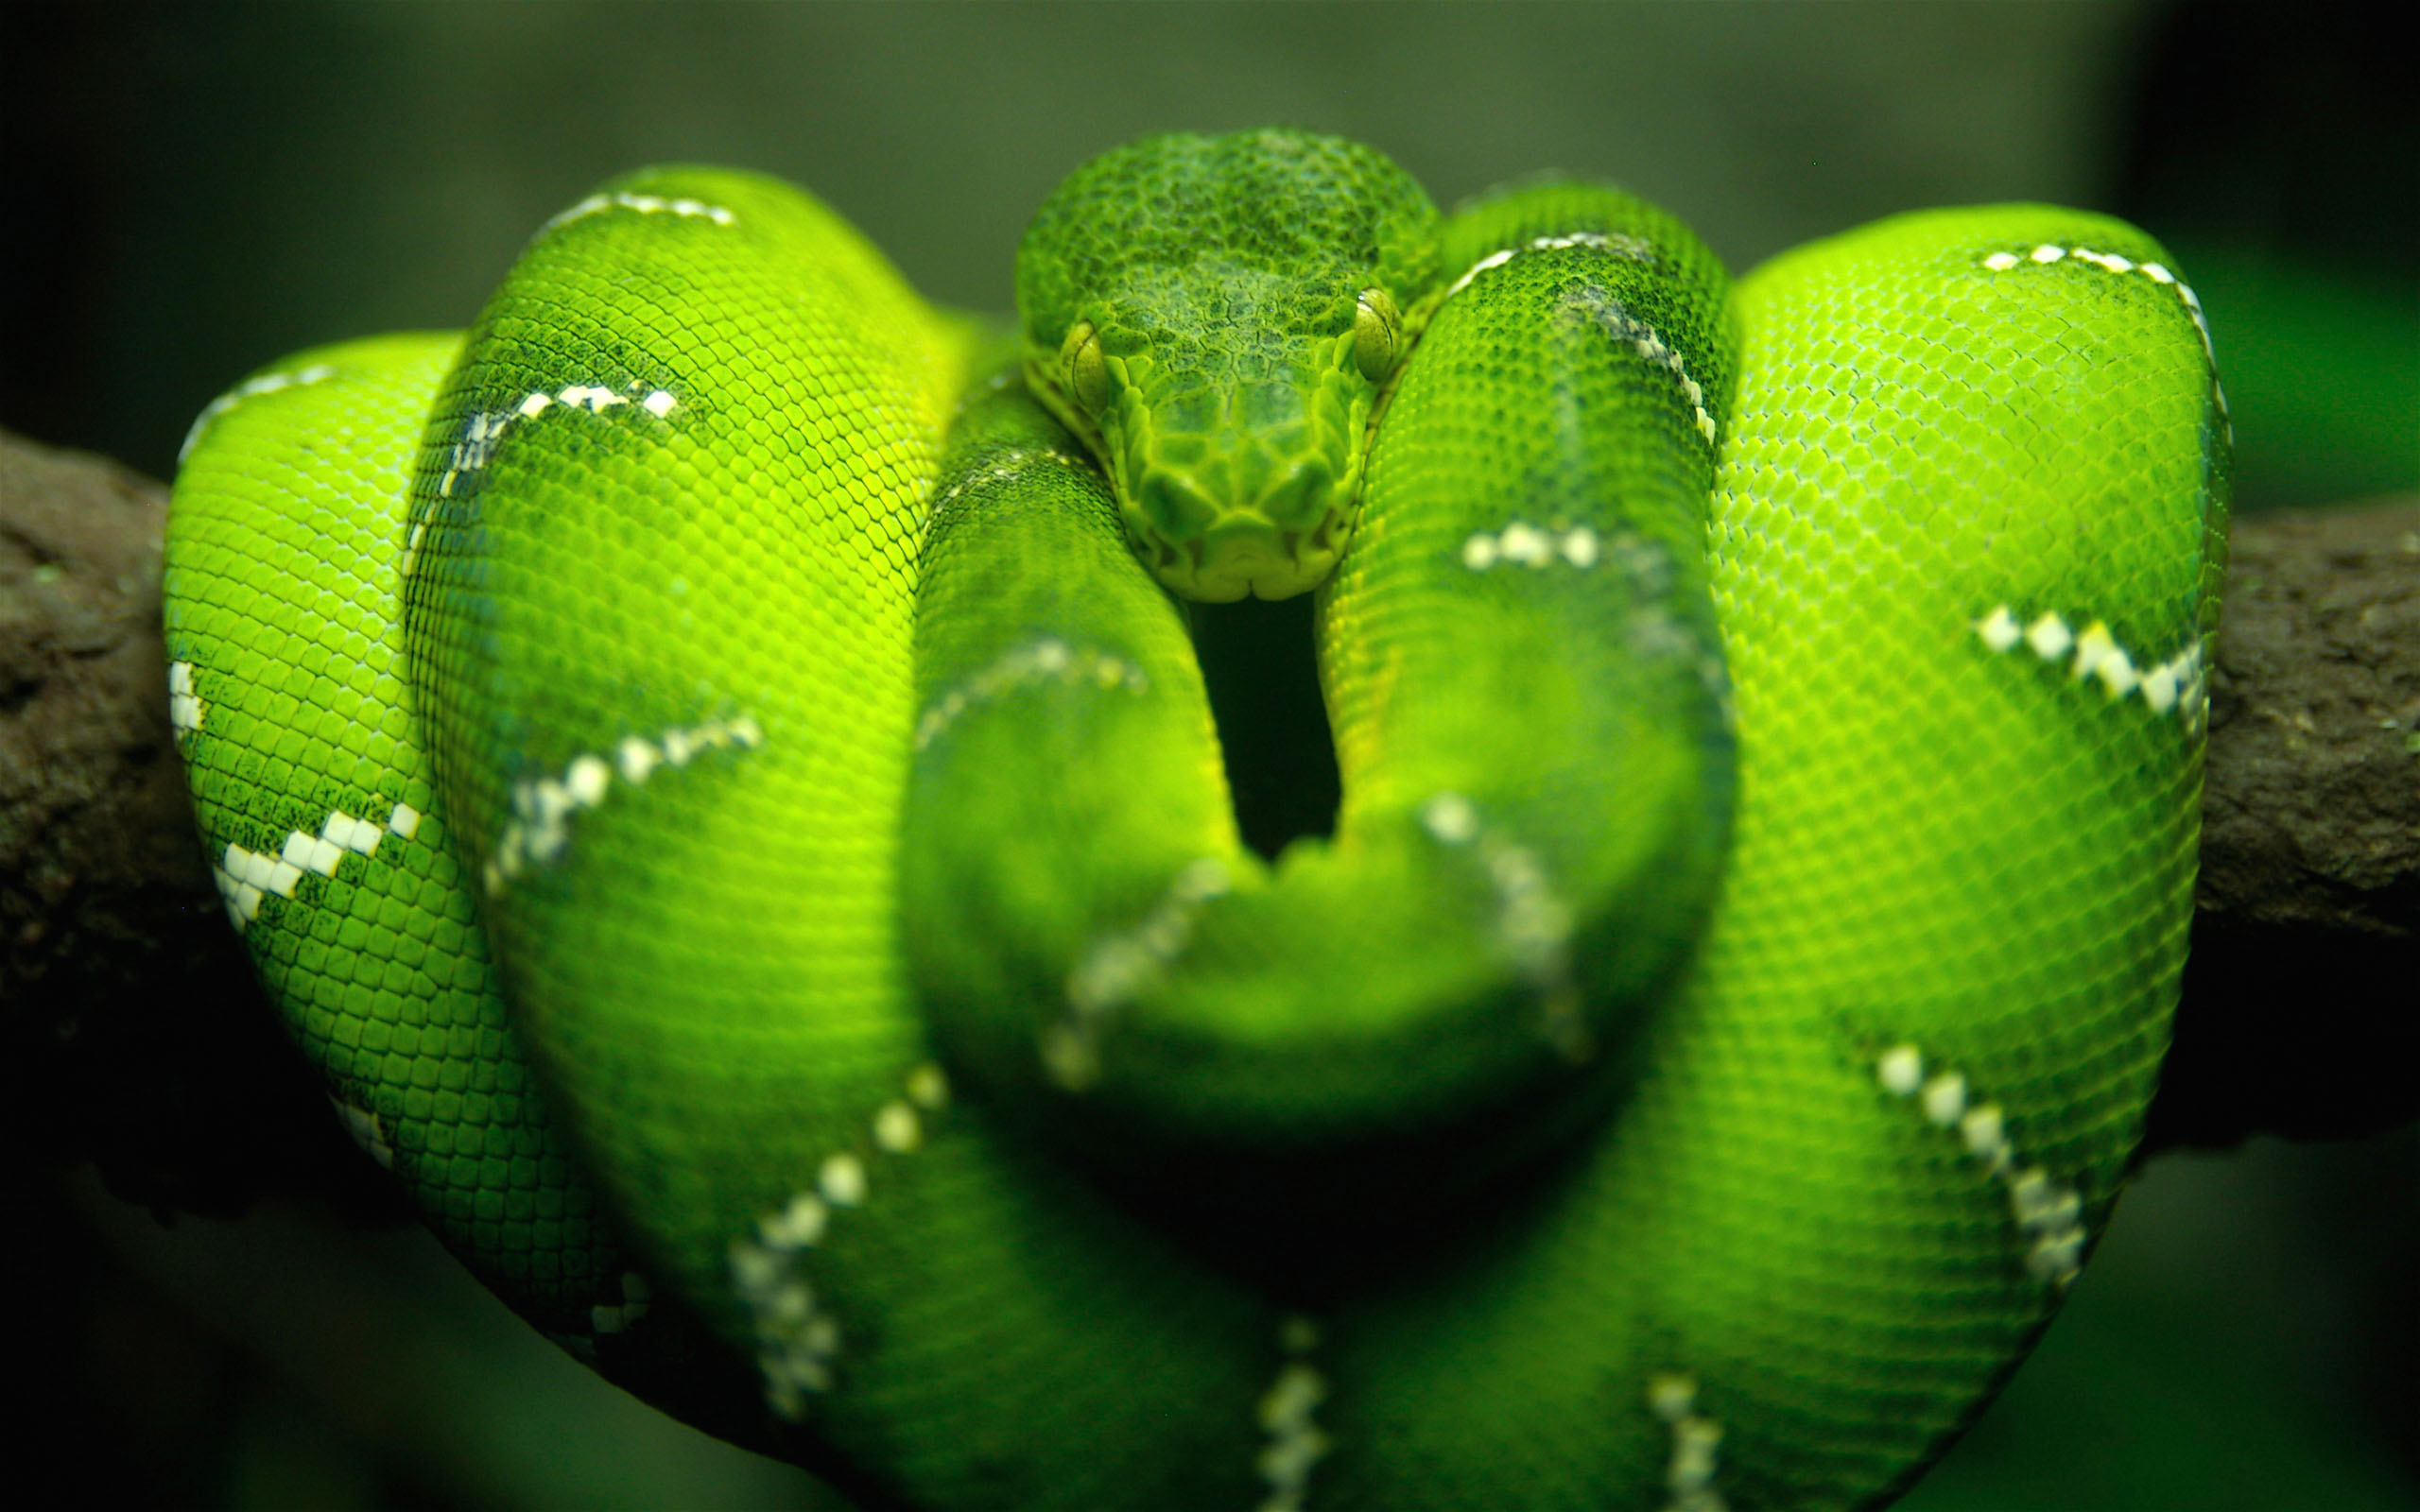 Green Tree Snake The Green Tree Snake can vary in colour from brown to green The body is very slender and it often has a yellow throat It is a harmless agile